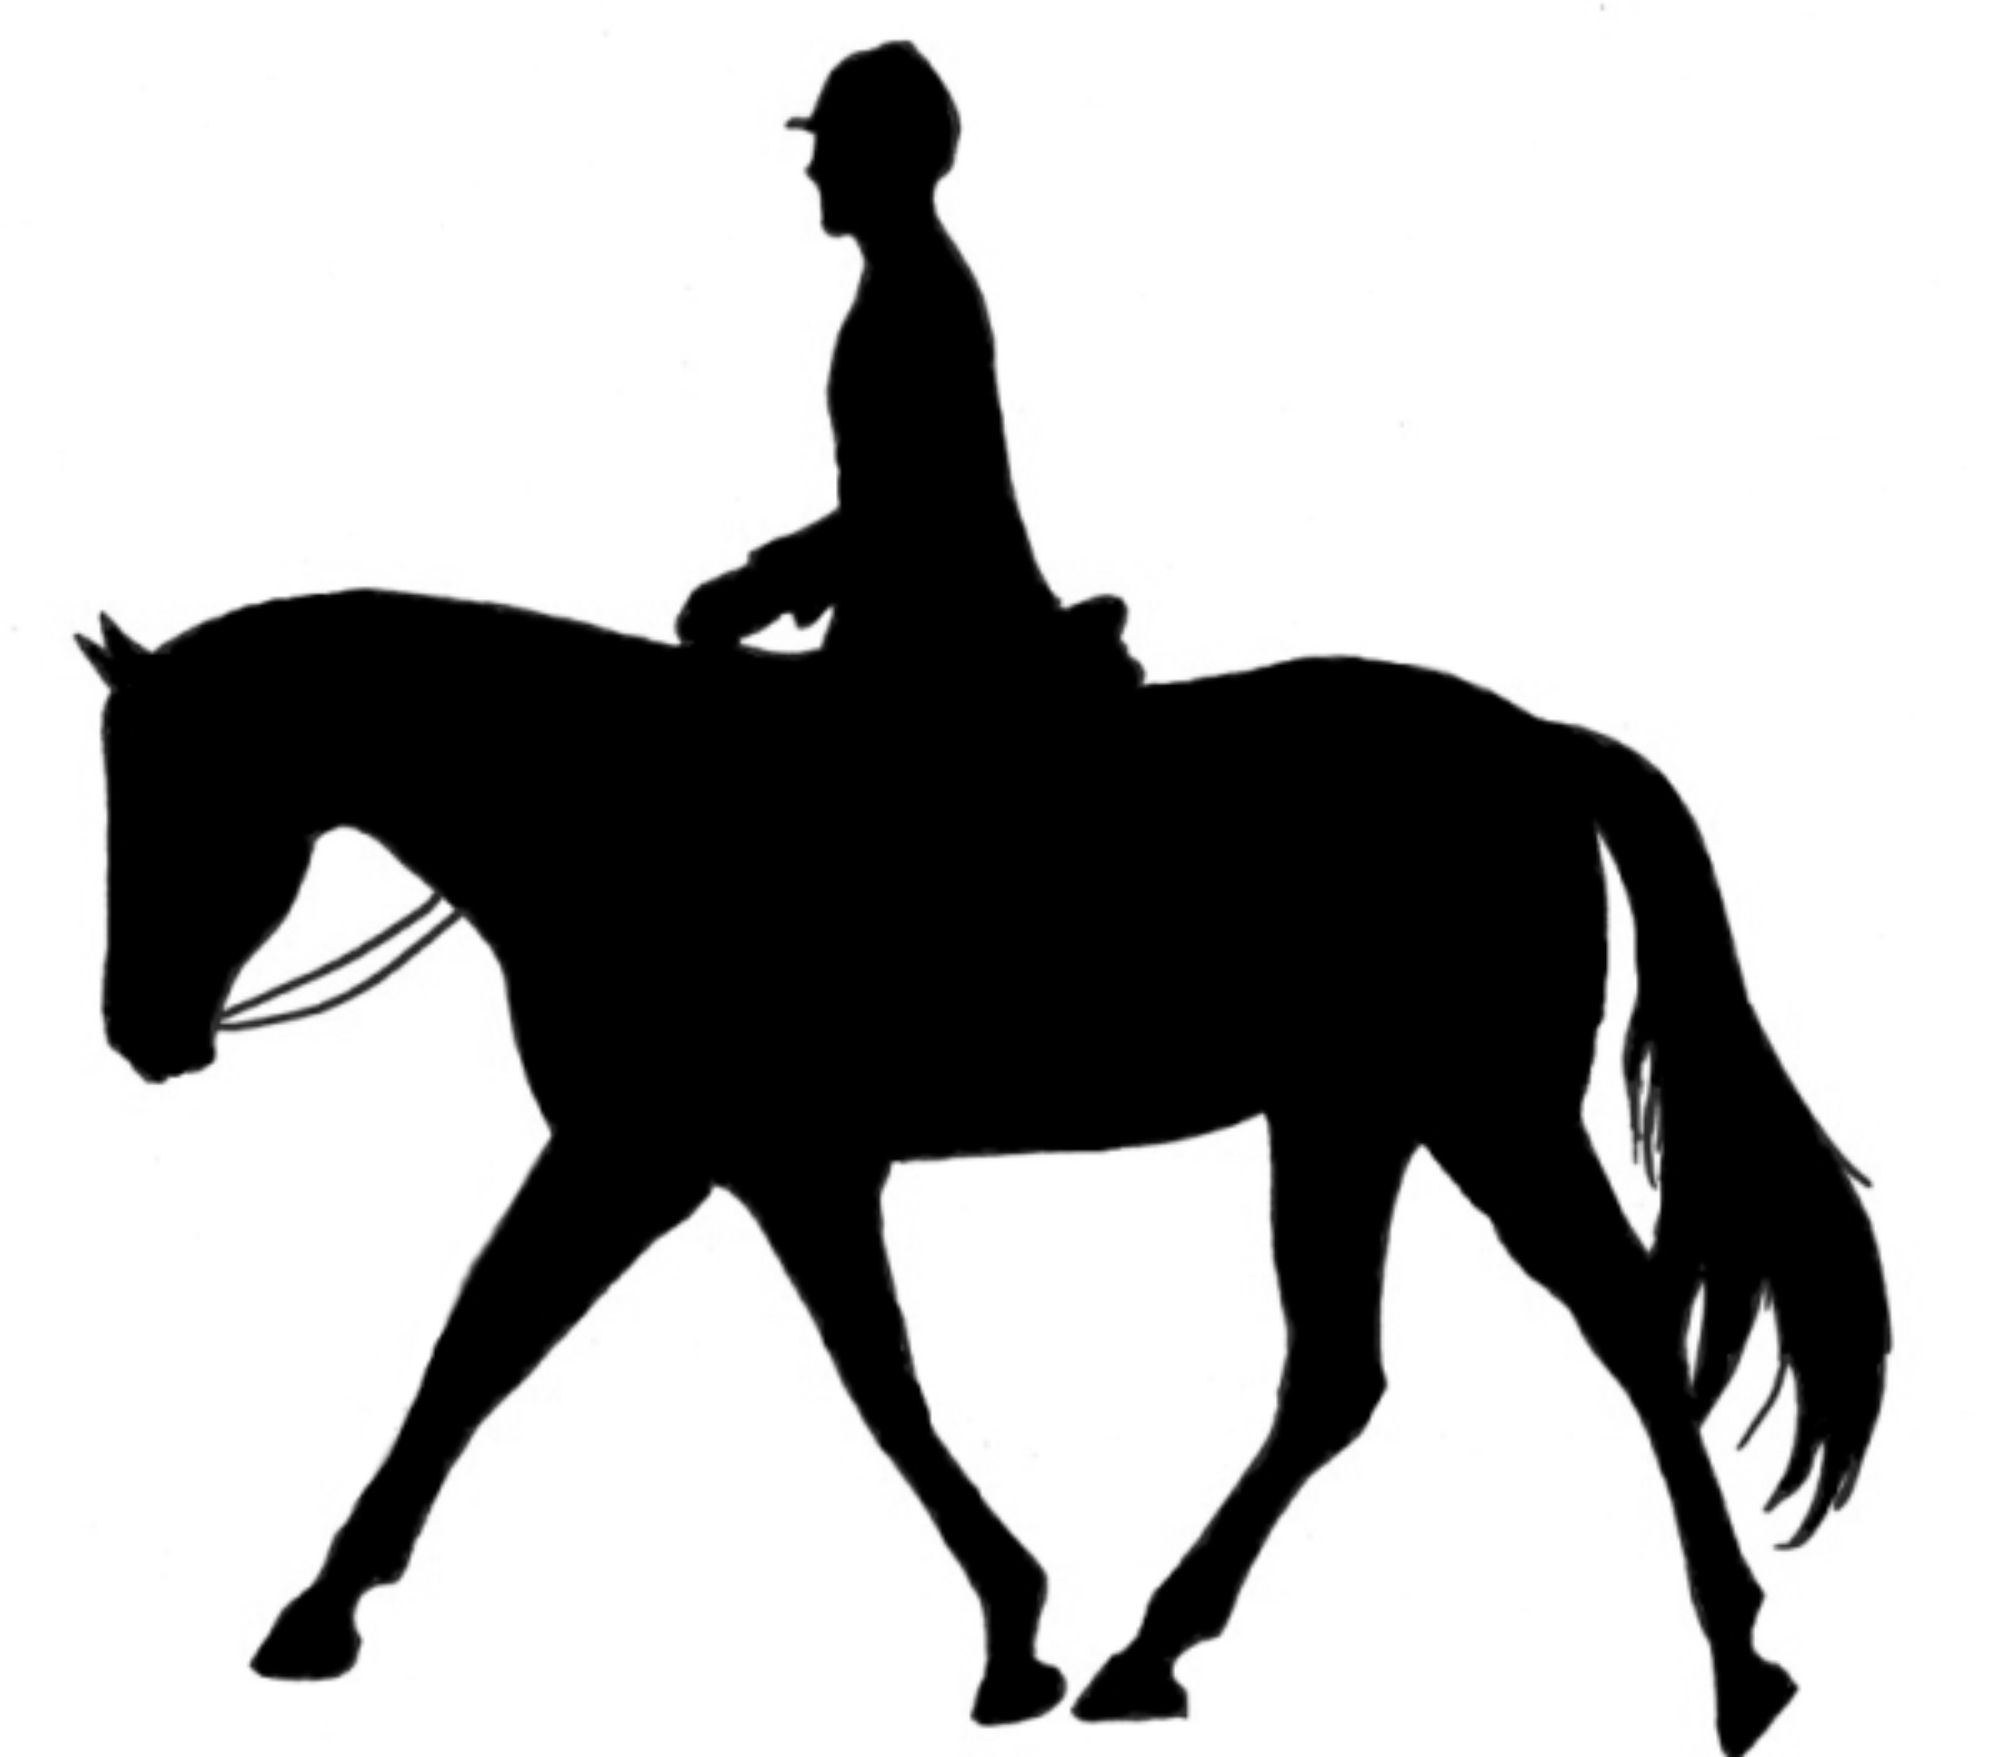 Horse clip art silhouette. Images at getdrawings com